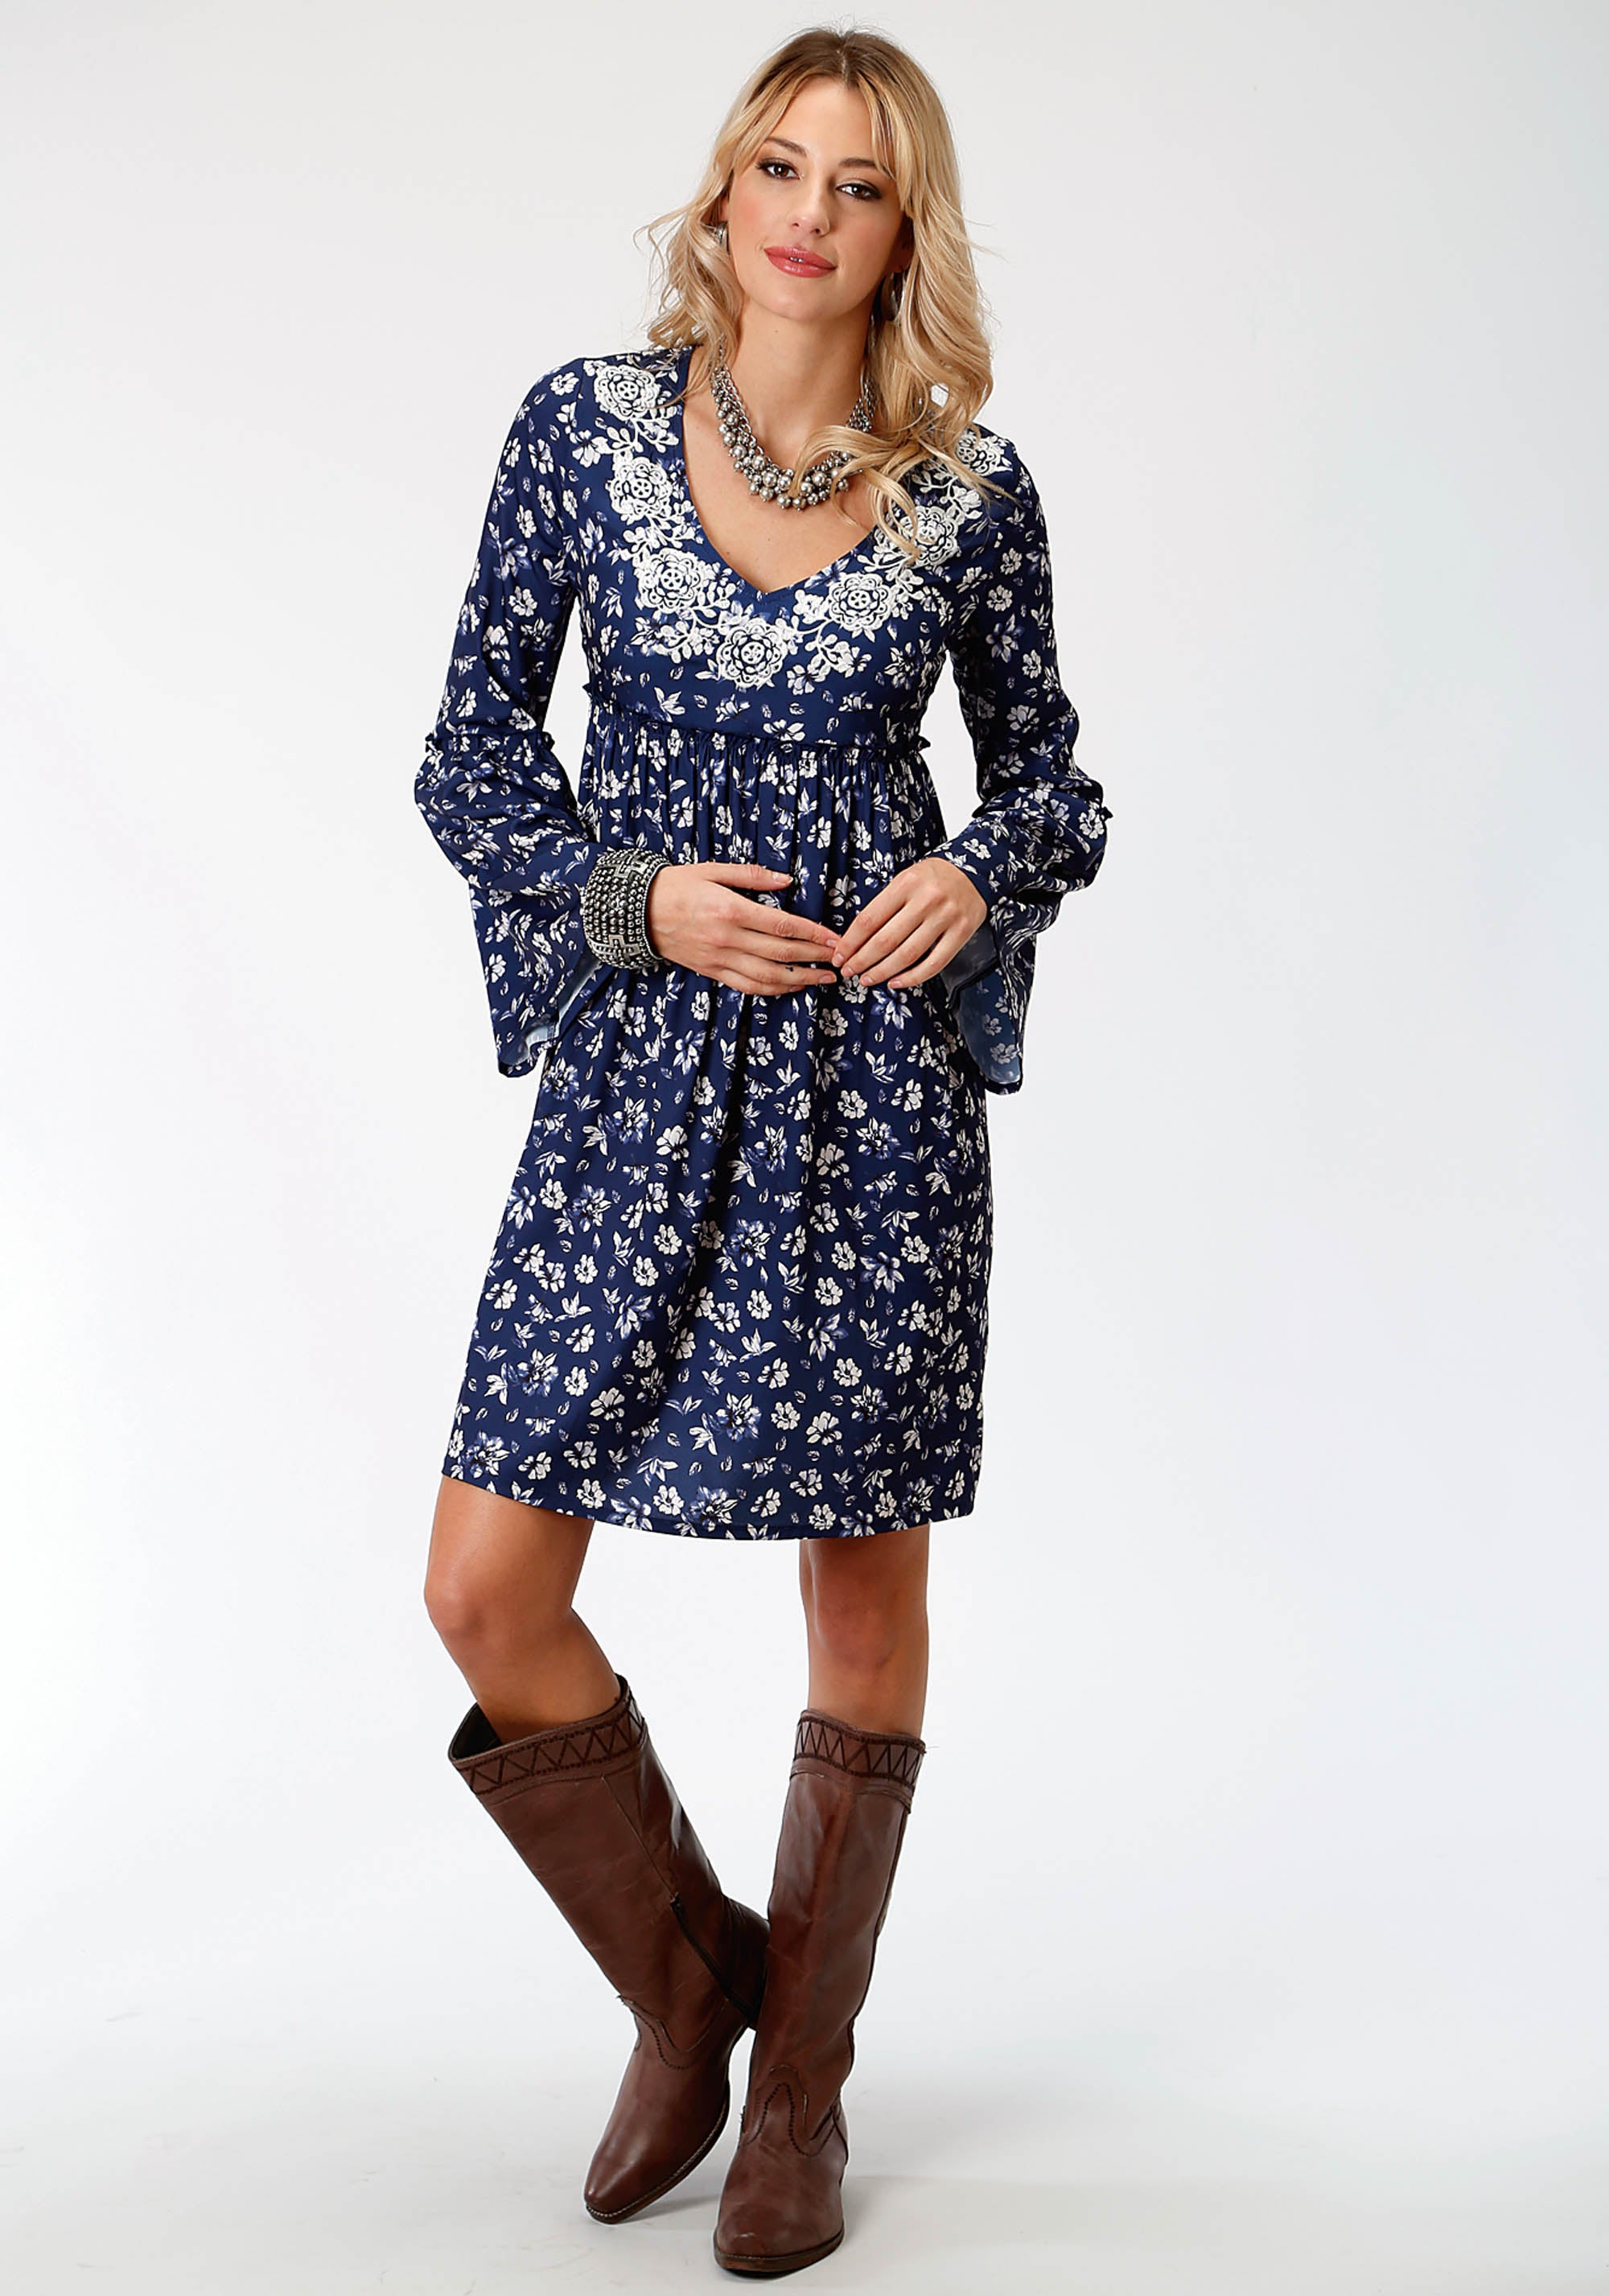 ROPER WOMENS BLUE 7441 STEEL MAGNOLIA PRT POLY CREPE DR STUDIO WEST COLLECTION- STEEL MAGNOLIAS LONG SLEEVE DRESS